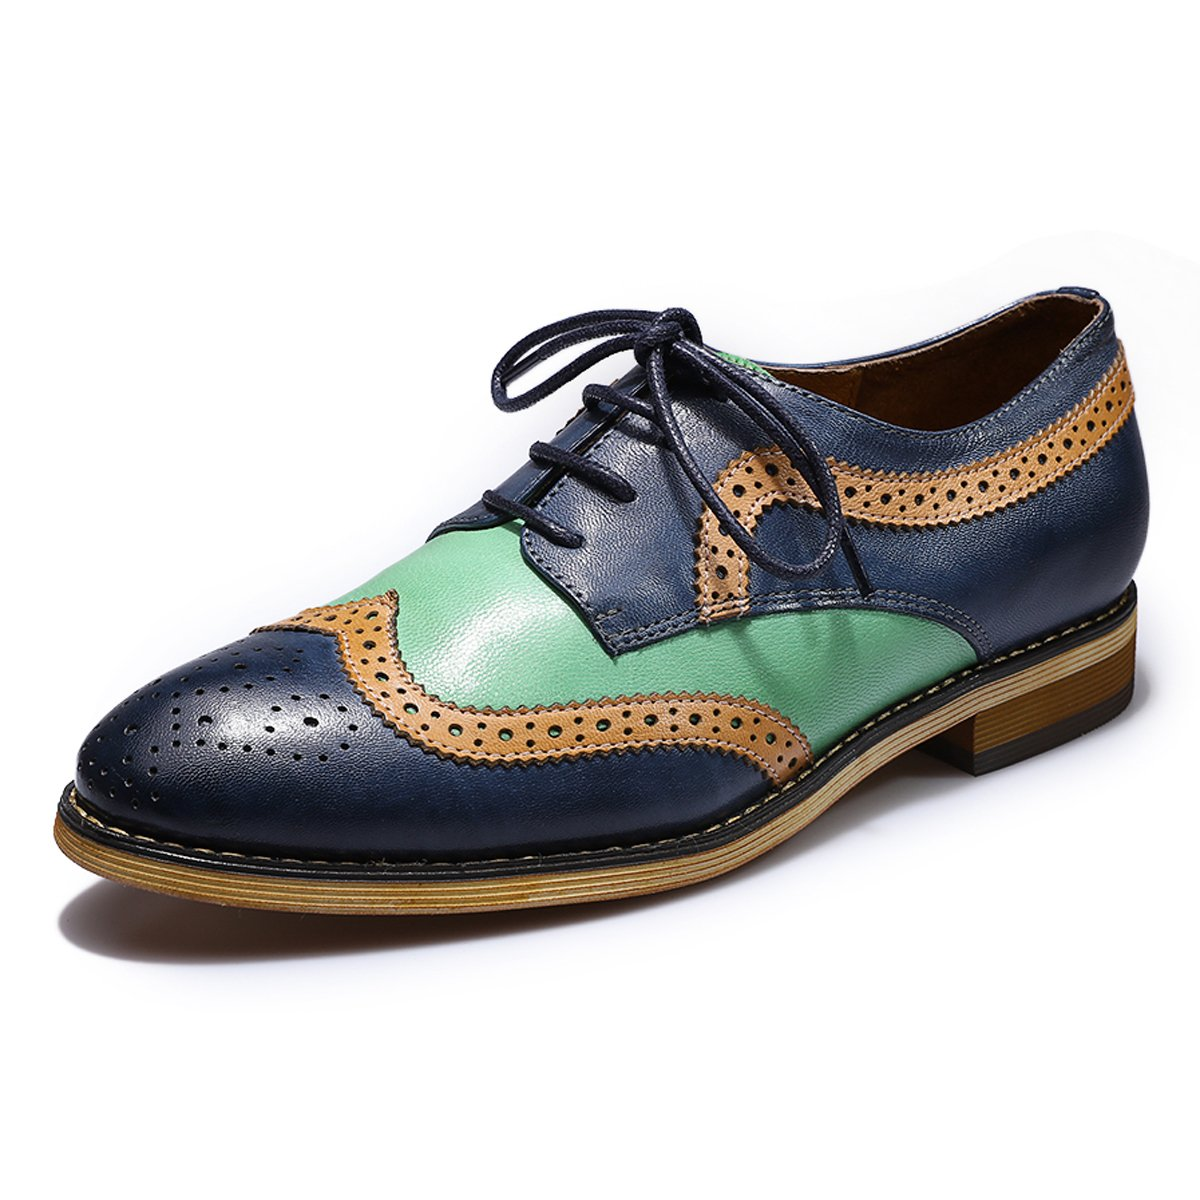 Mona Flying Women's Leather Perforated Lace-up Oxfords Shoes For Women Wingtip Multicolor Brougue Shoes,9 B(M) US,Blue-brown